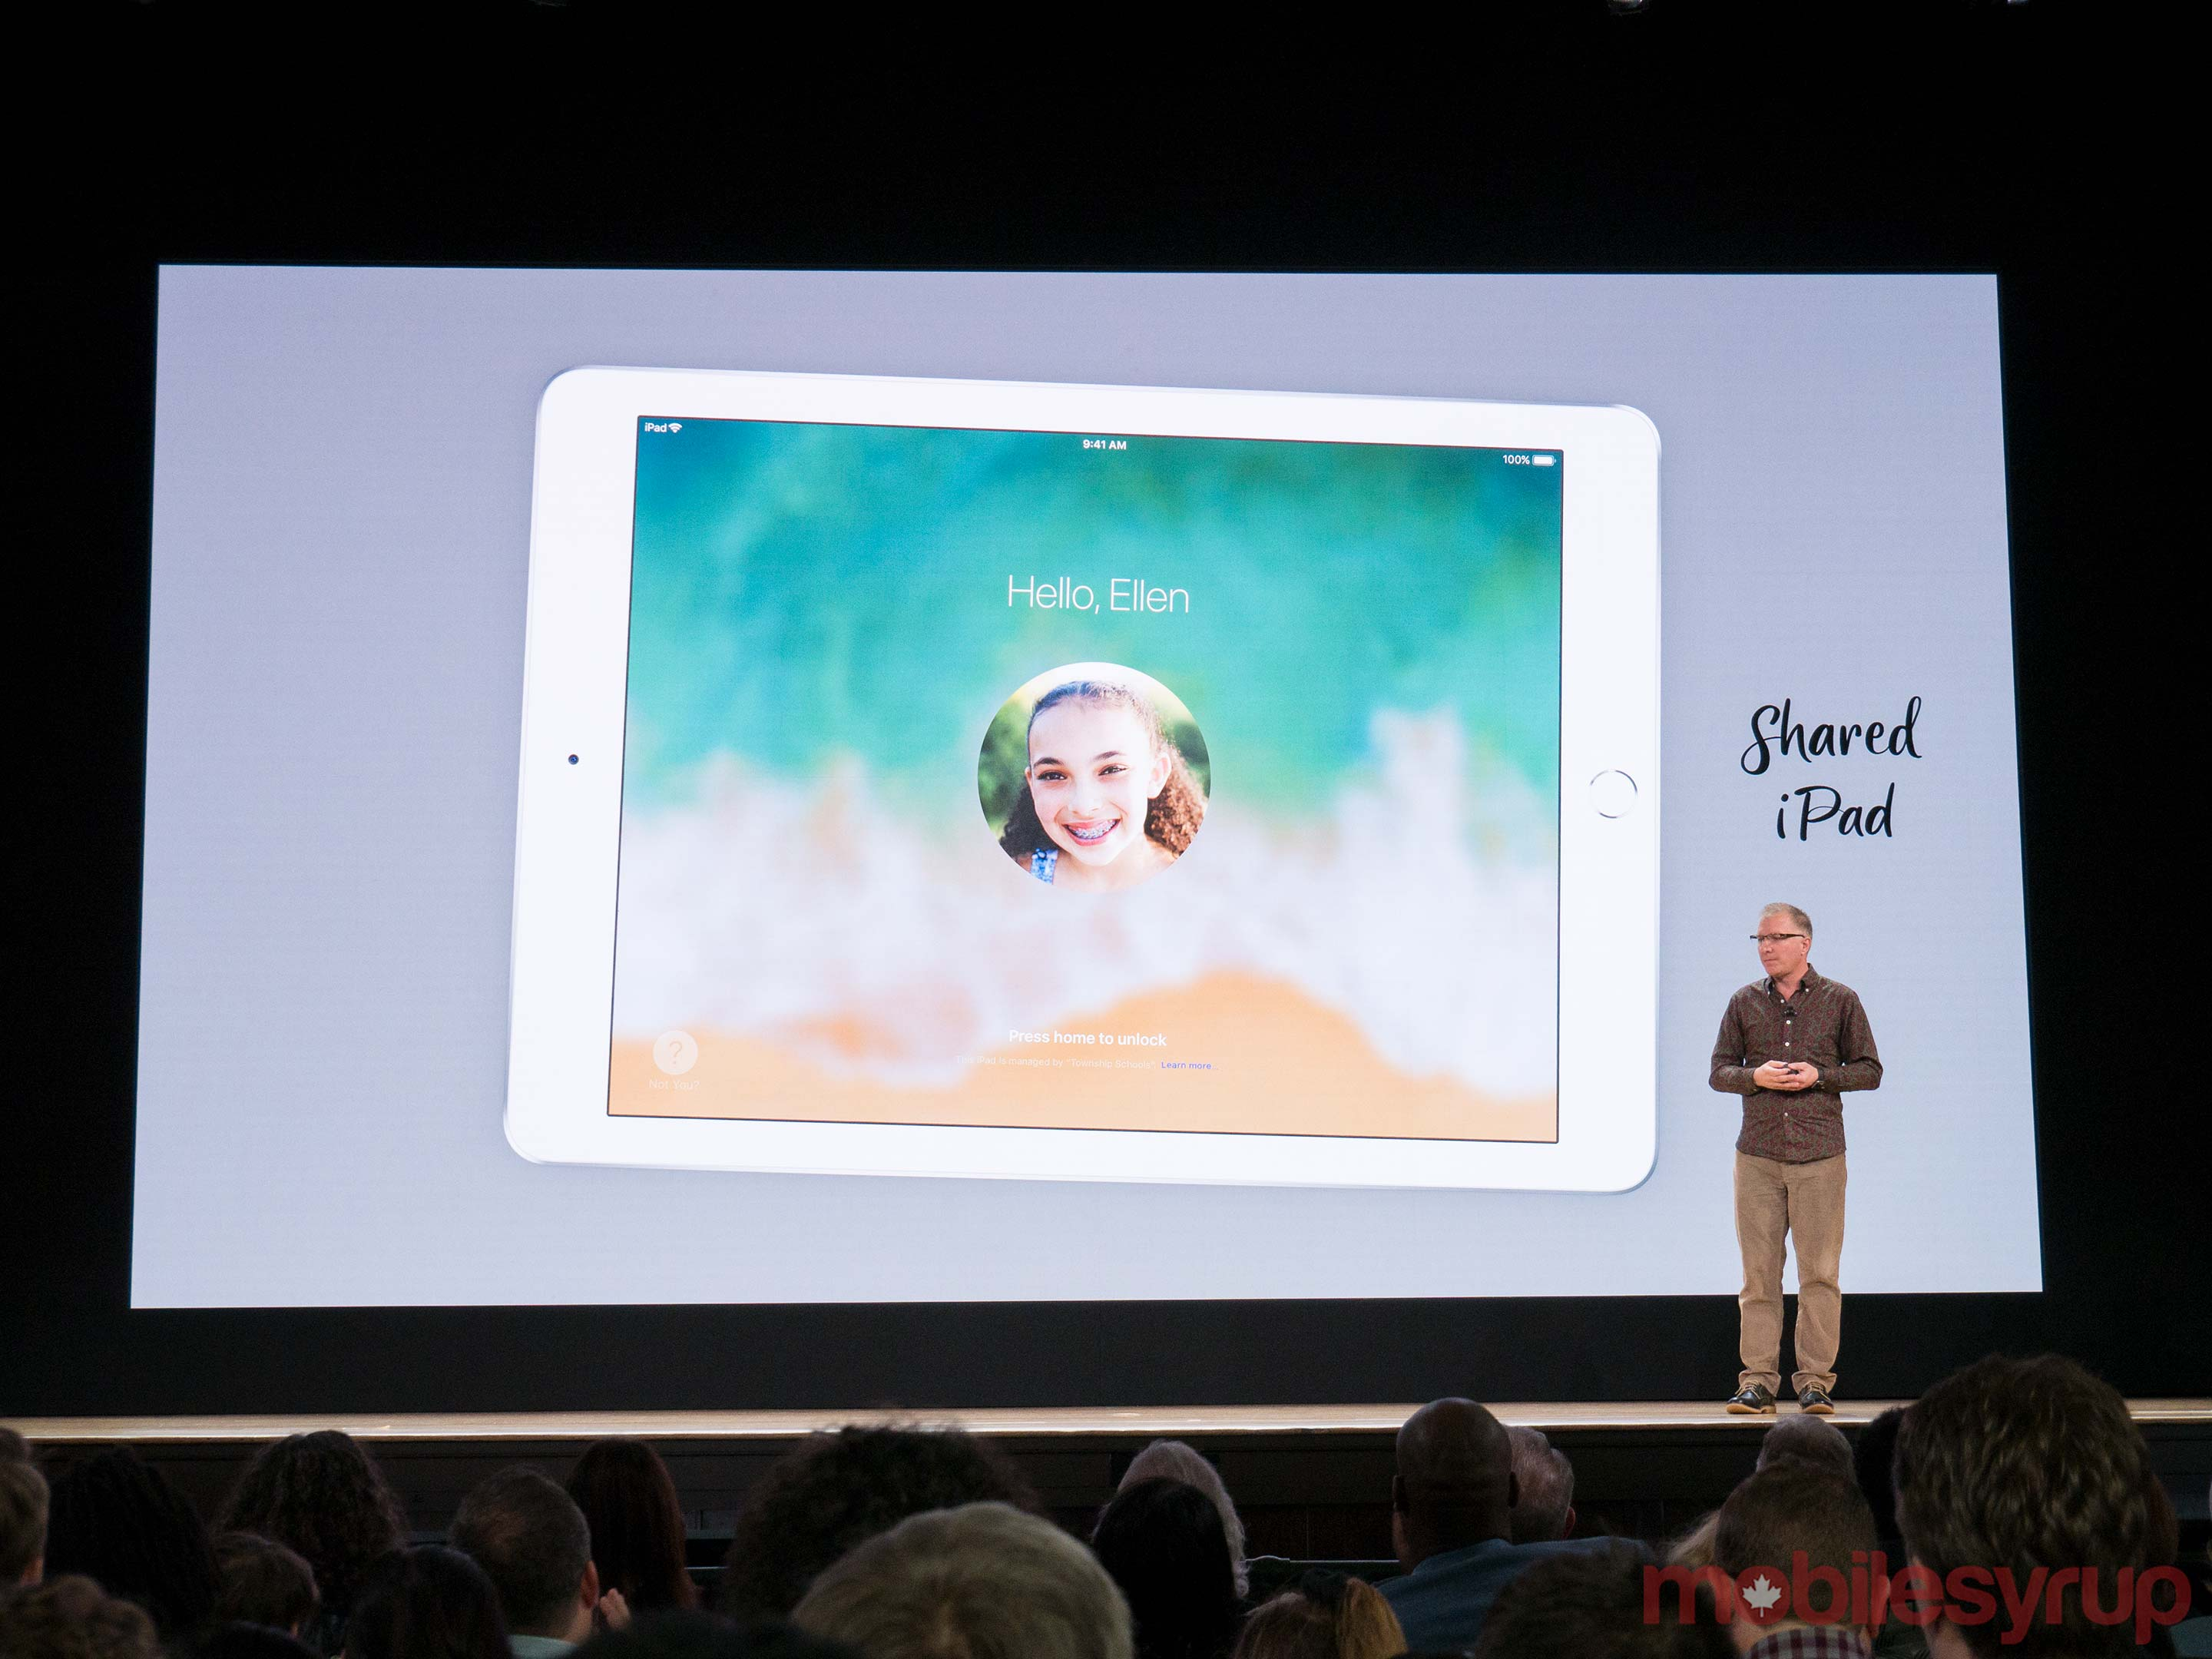 Apple's new iPad at the company's education event